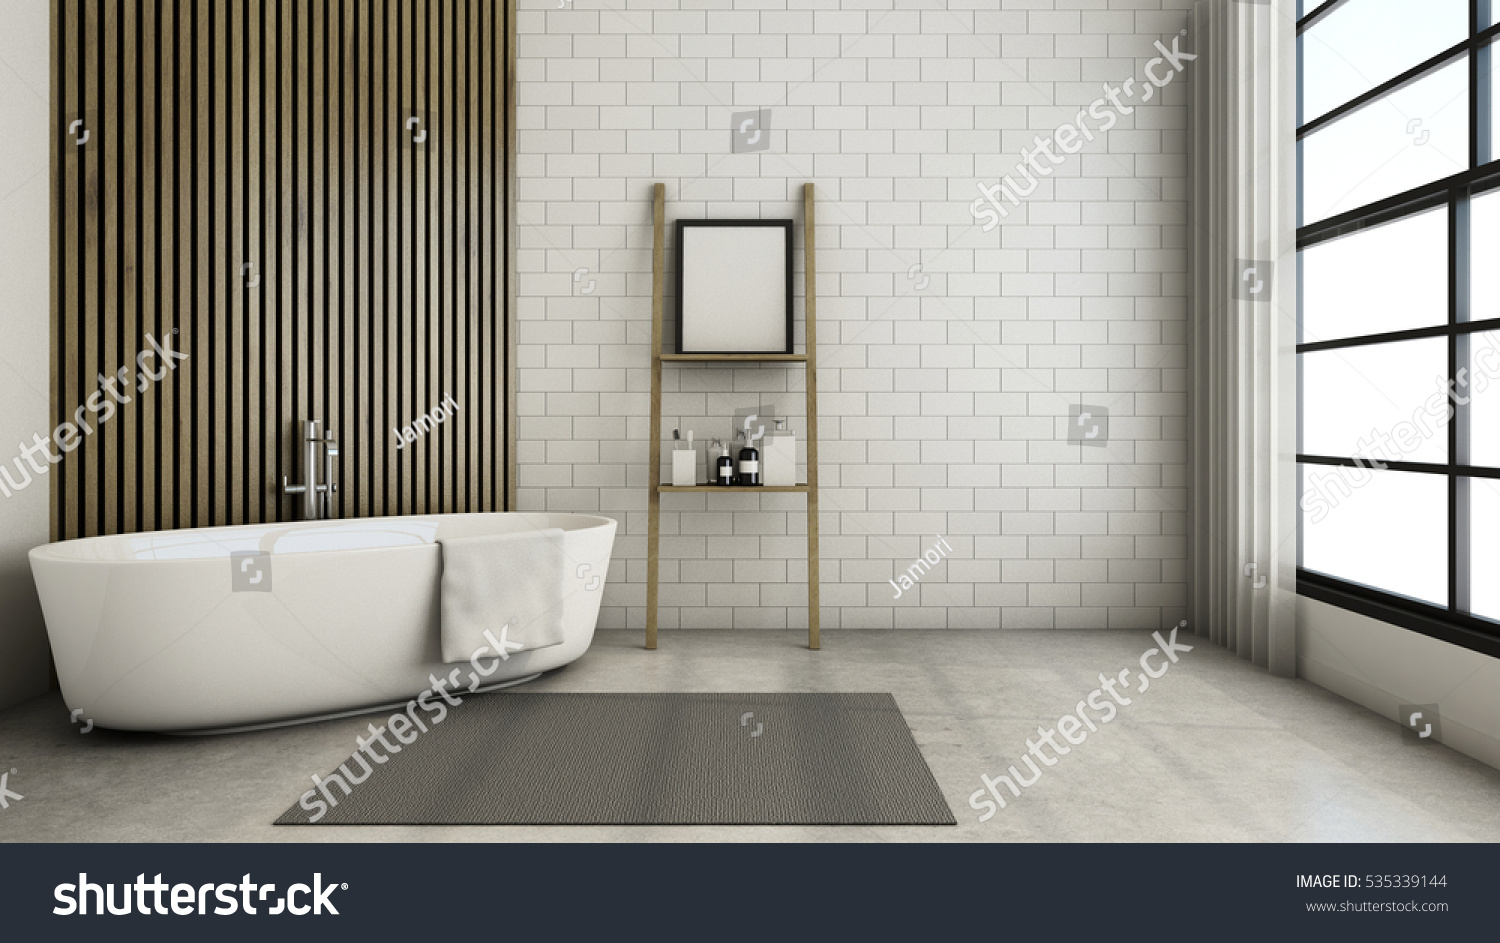 Bathroom Design Modern Loft 3 D Render Stock Illustration 535339144 ...